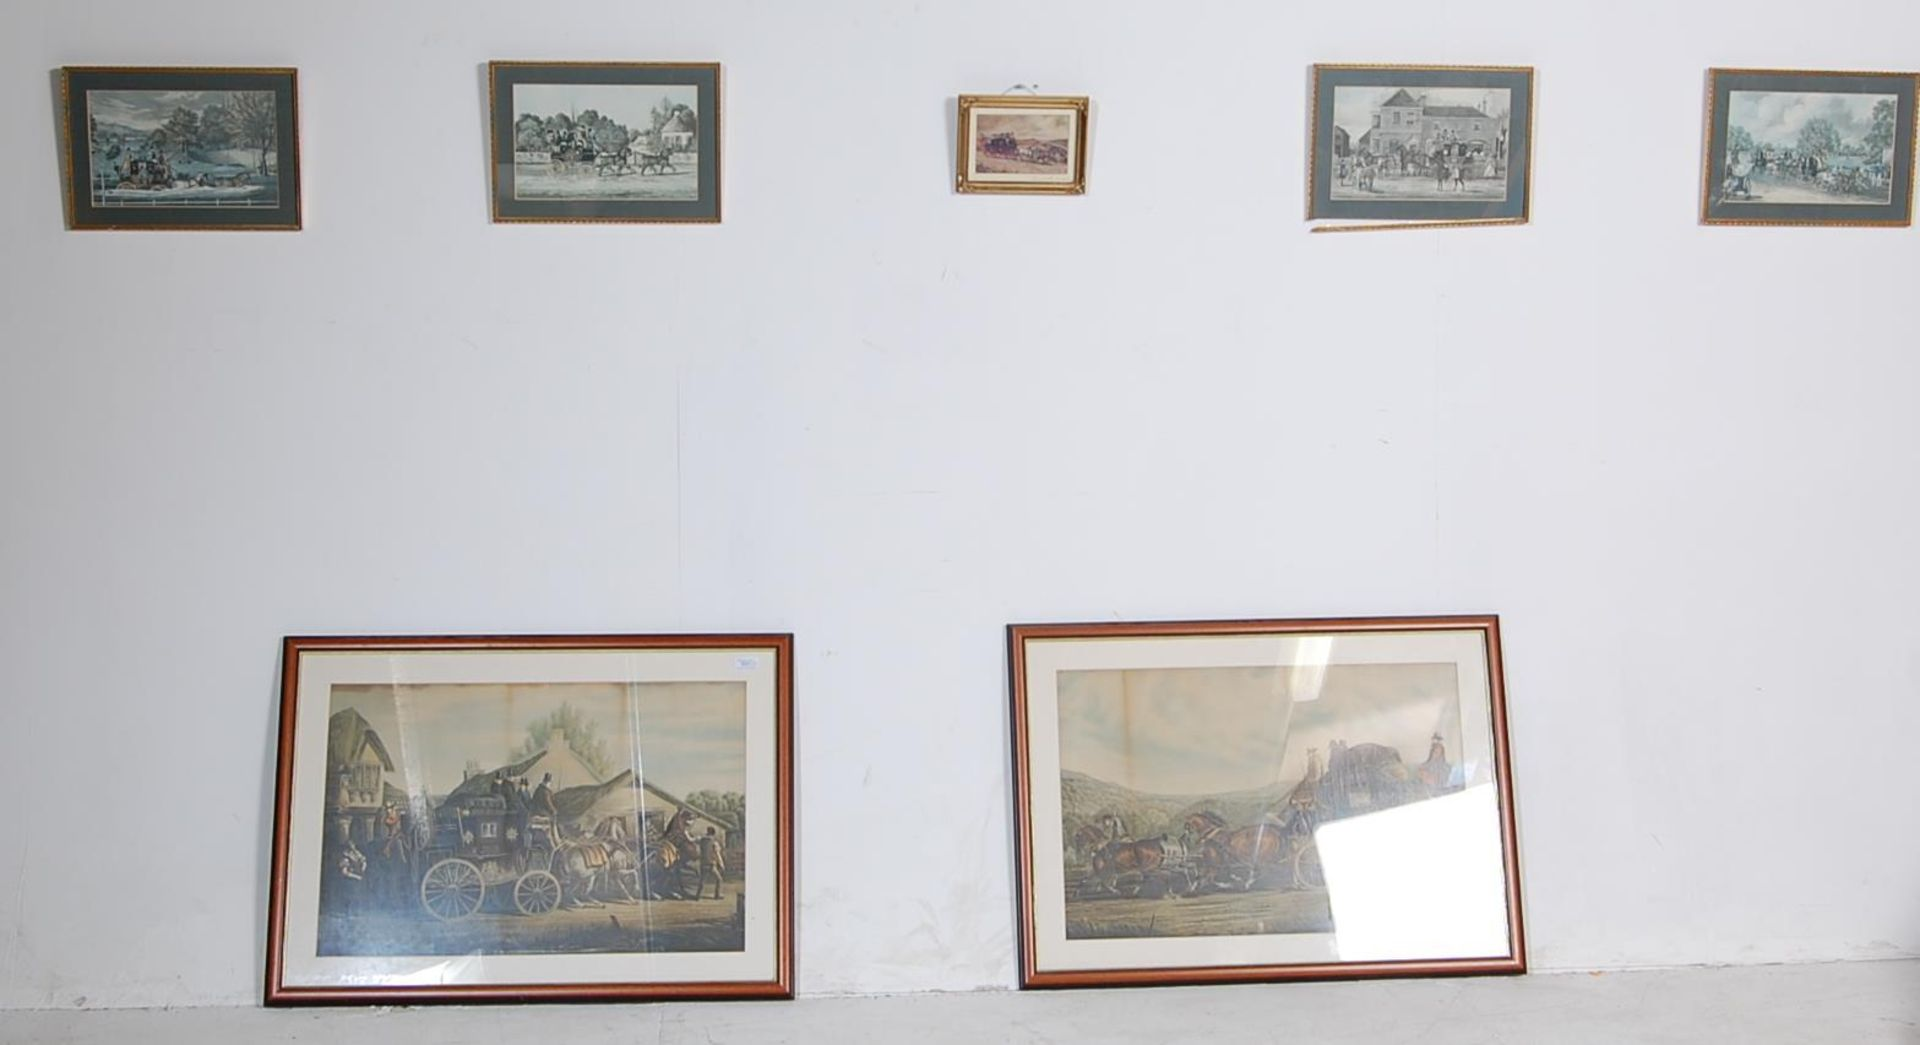 A GROUP OF SEVEN ROYAL MAIL LITHOGRAPH PRINTS DEPICTING 19TH CENTURY ROAYL MAIL COACHES